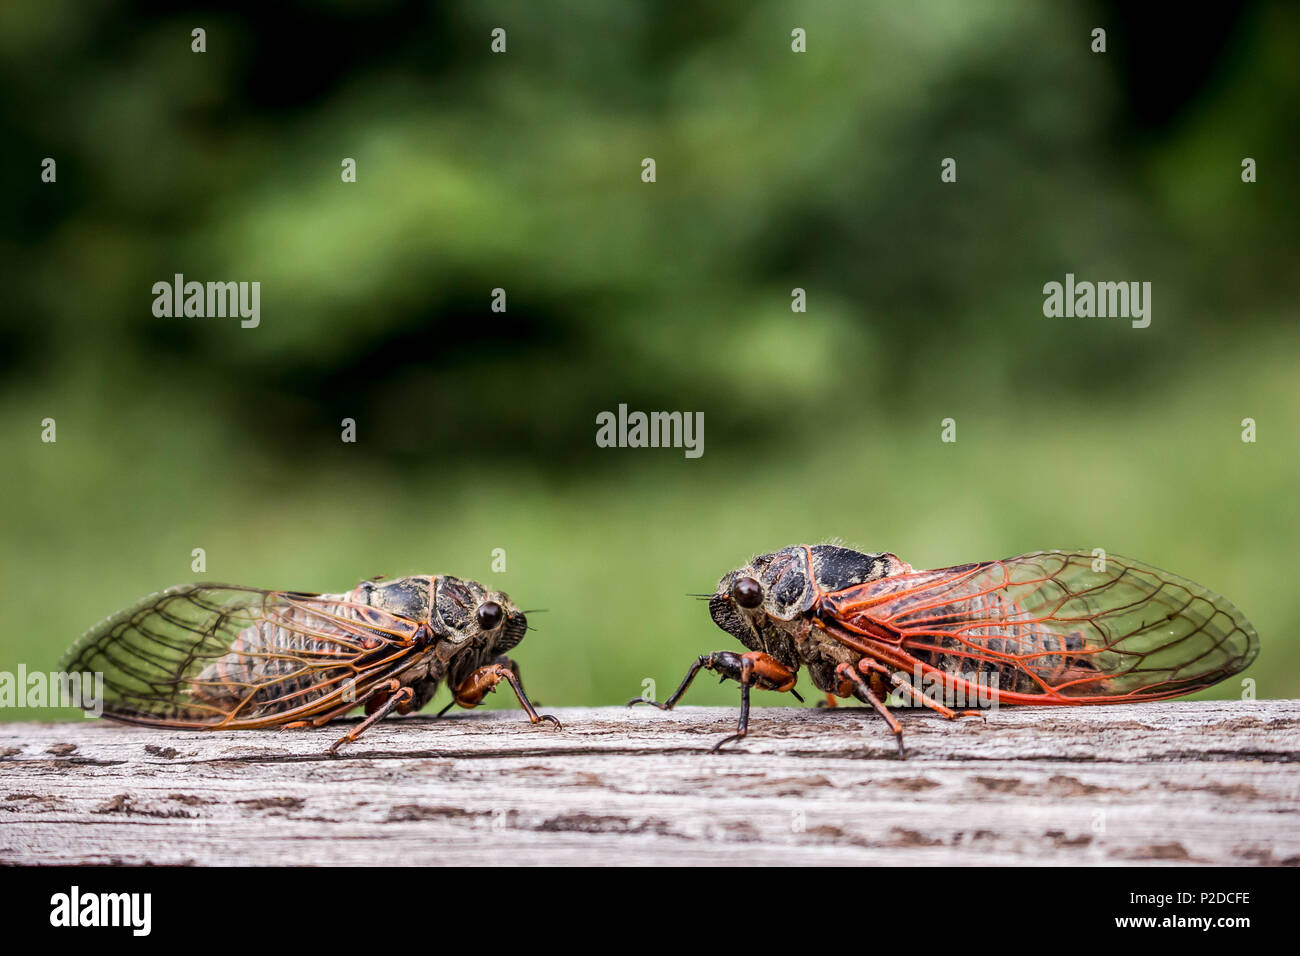 Two adult cicadas Tibicina haematodes with orange veins on the wings - Stock Image